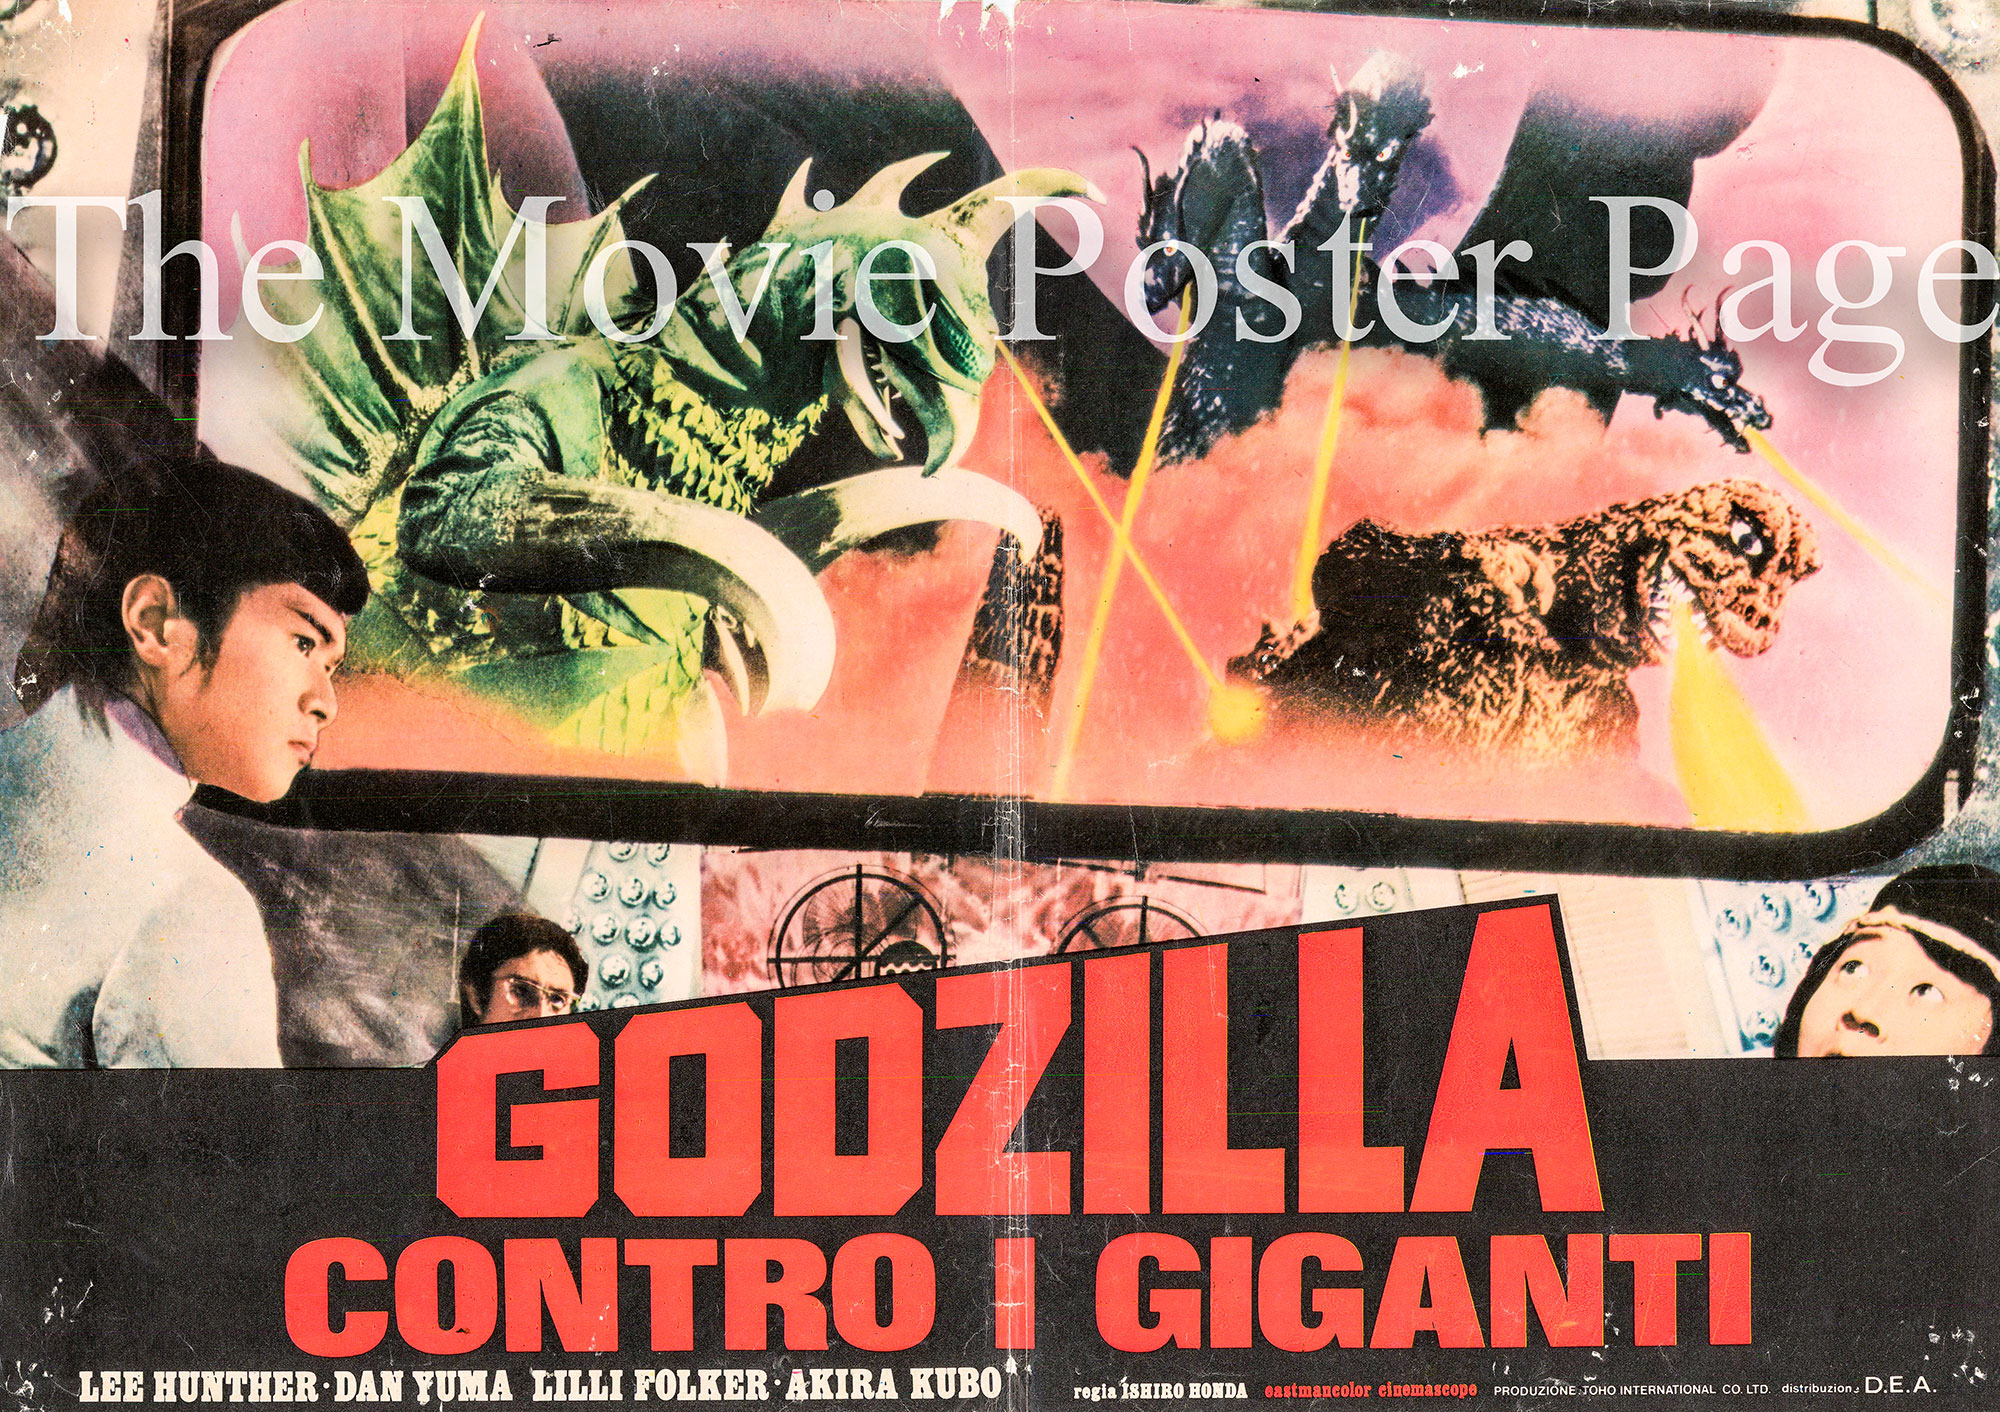 Pictured is an Italian busta poster for the 1972 Jan Fukuda film Godzilla vs. Gigan starring Hiroshi Ishikawa.